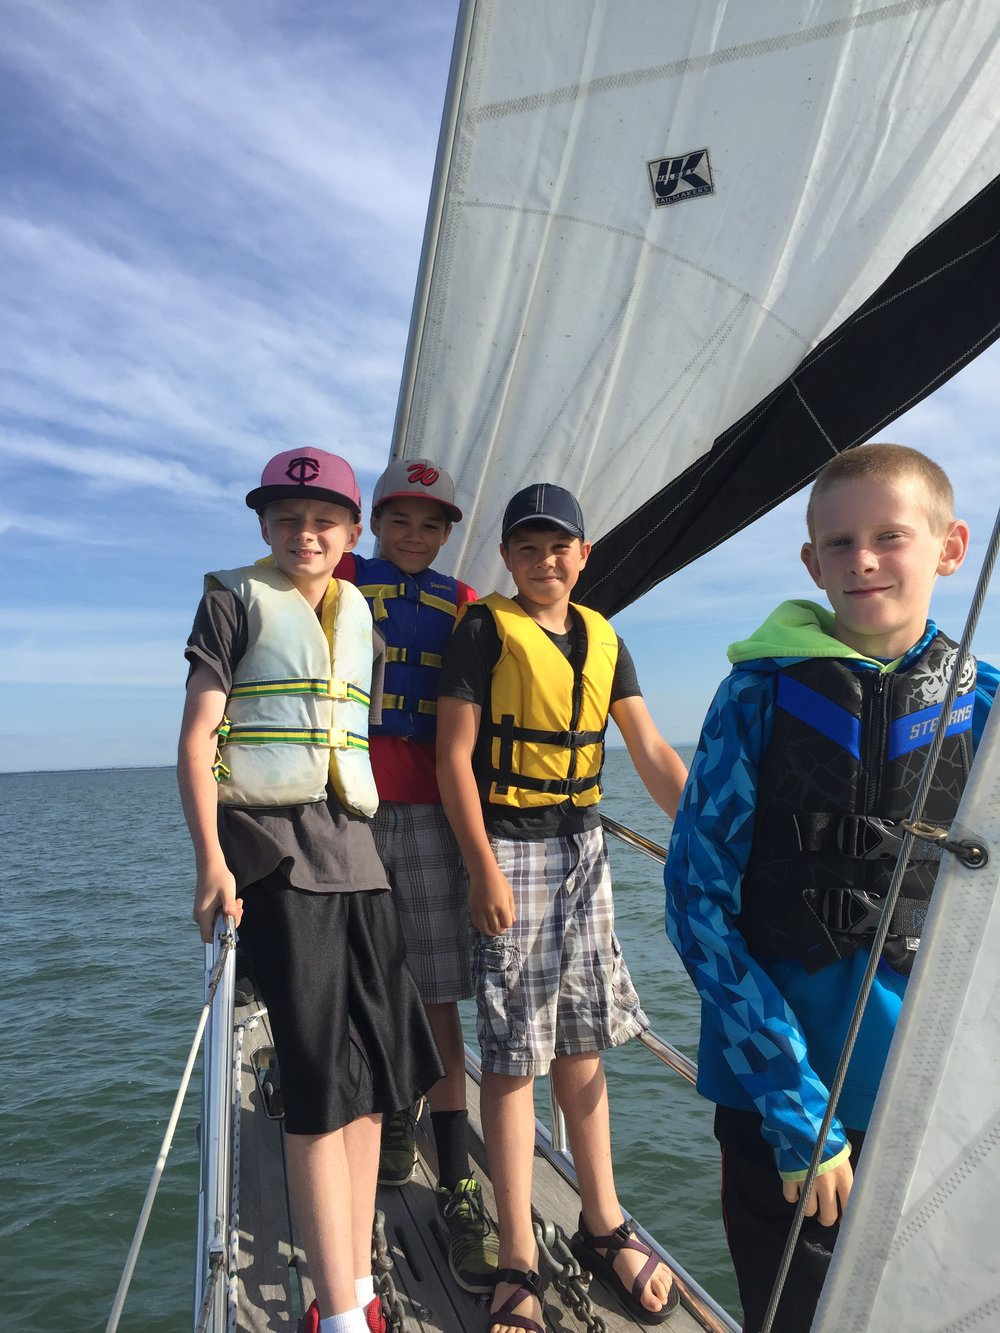 How Can You Help? - How can you help kids experience great adventures, make amazing discoveries (often about themselves), and become good stewards of Lake Superior?